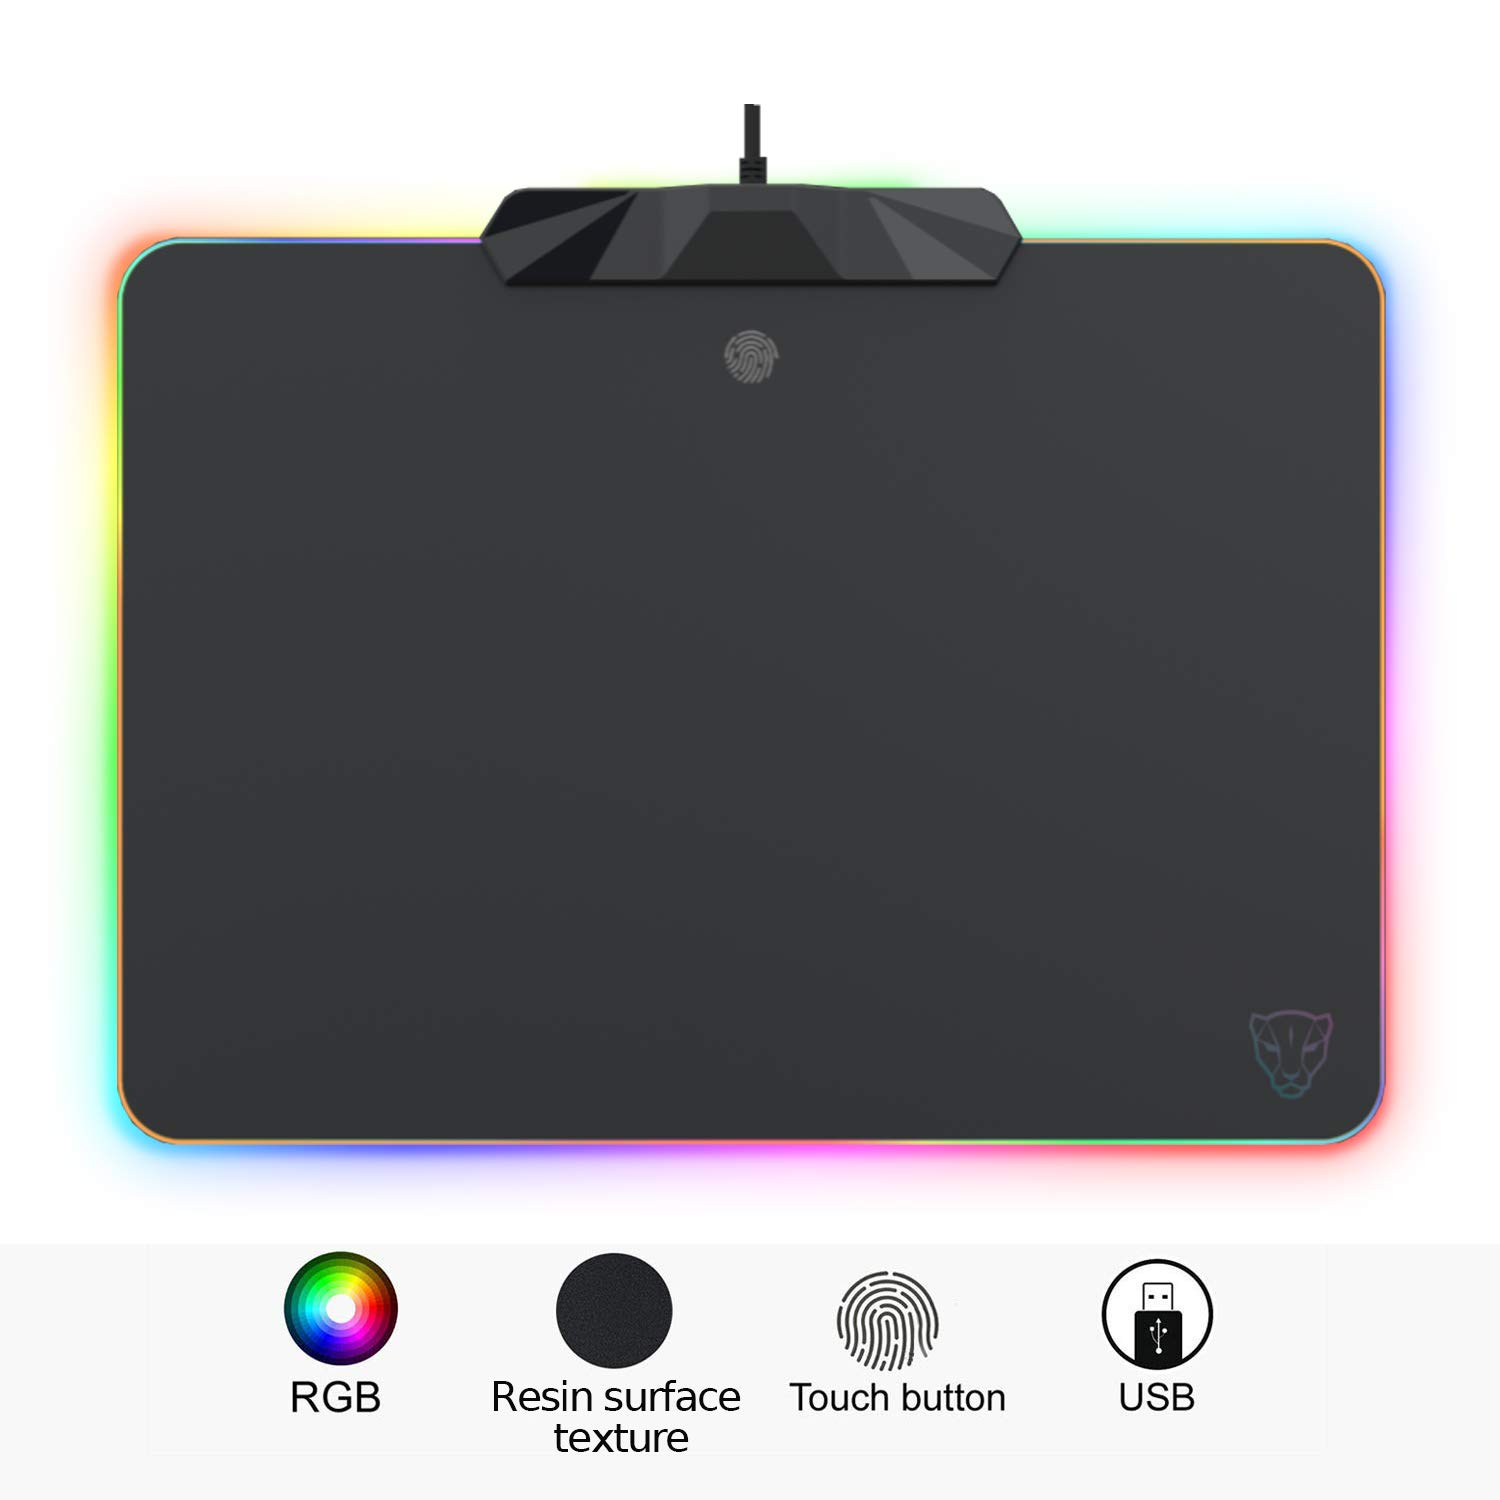 MOTOSPEED RGB Gaming Mouse Pad -LED Lighting Effects,Wired,Hard Surface Gamer Mouse Mat for Laptop Computer PC Games 13.8X9.8 Inch New 2019 Version